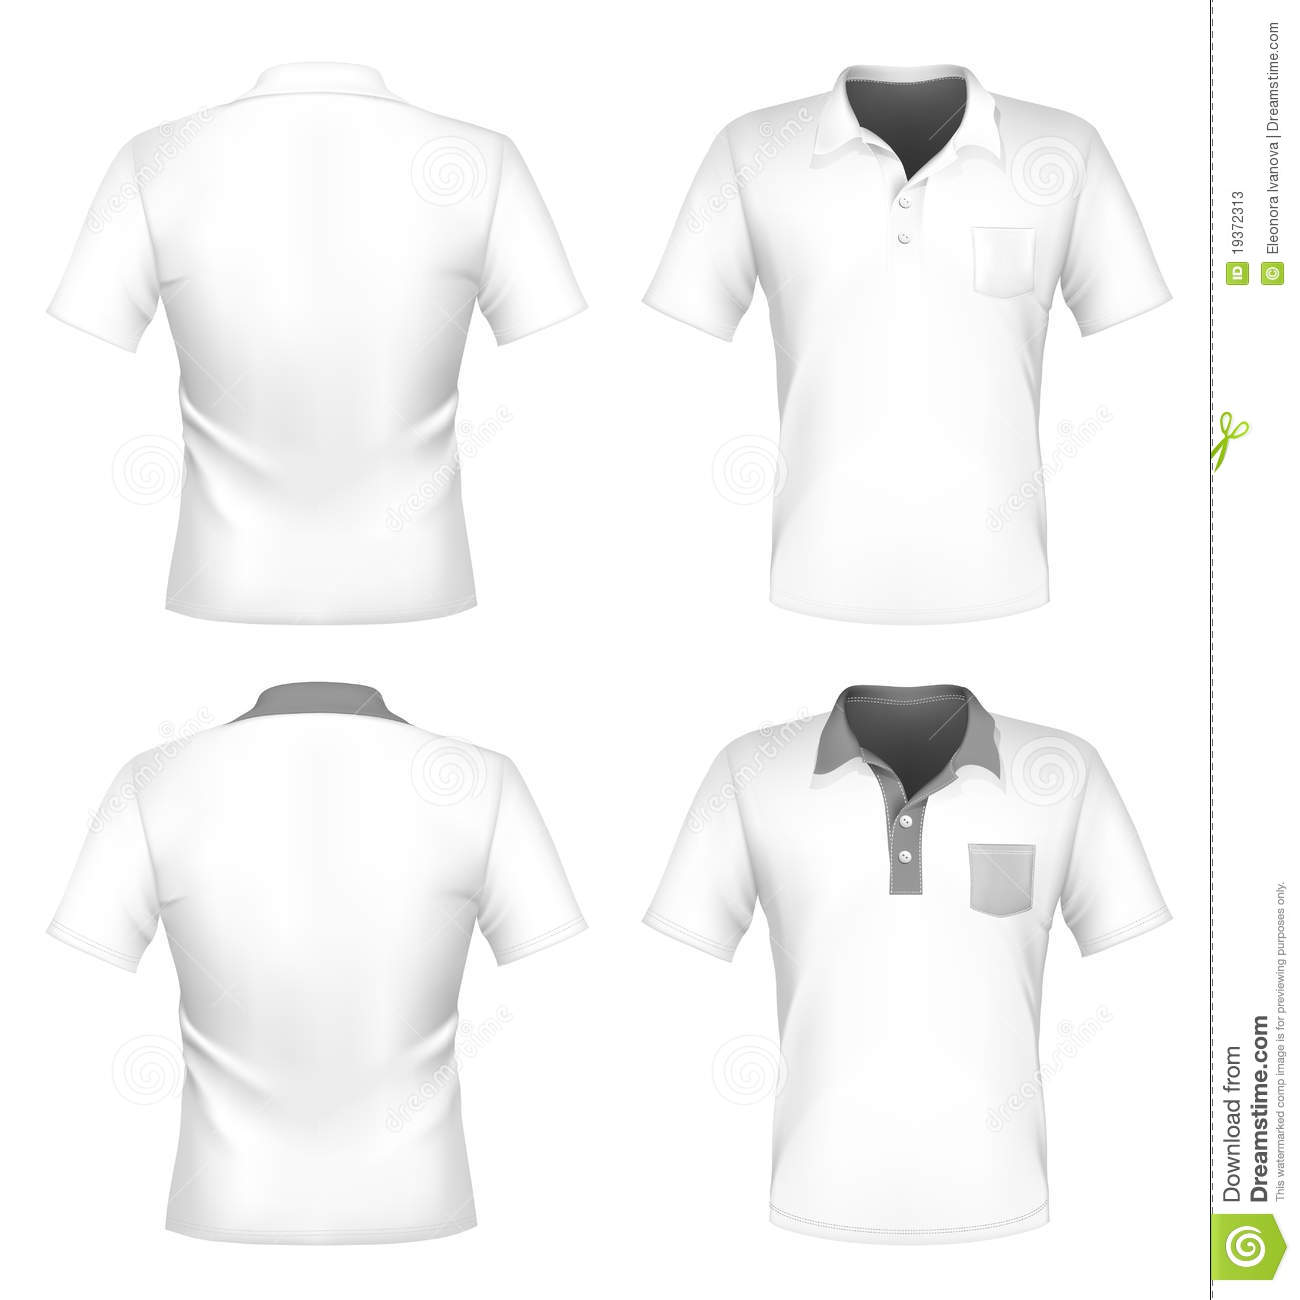 Design t shirt with front pocket - Design T Shirt With Front Pocket Men S Polo Shirt Design Template With Pocket Stock Download